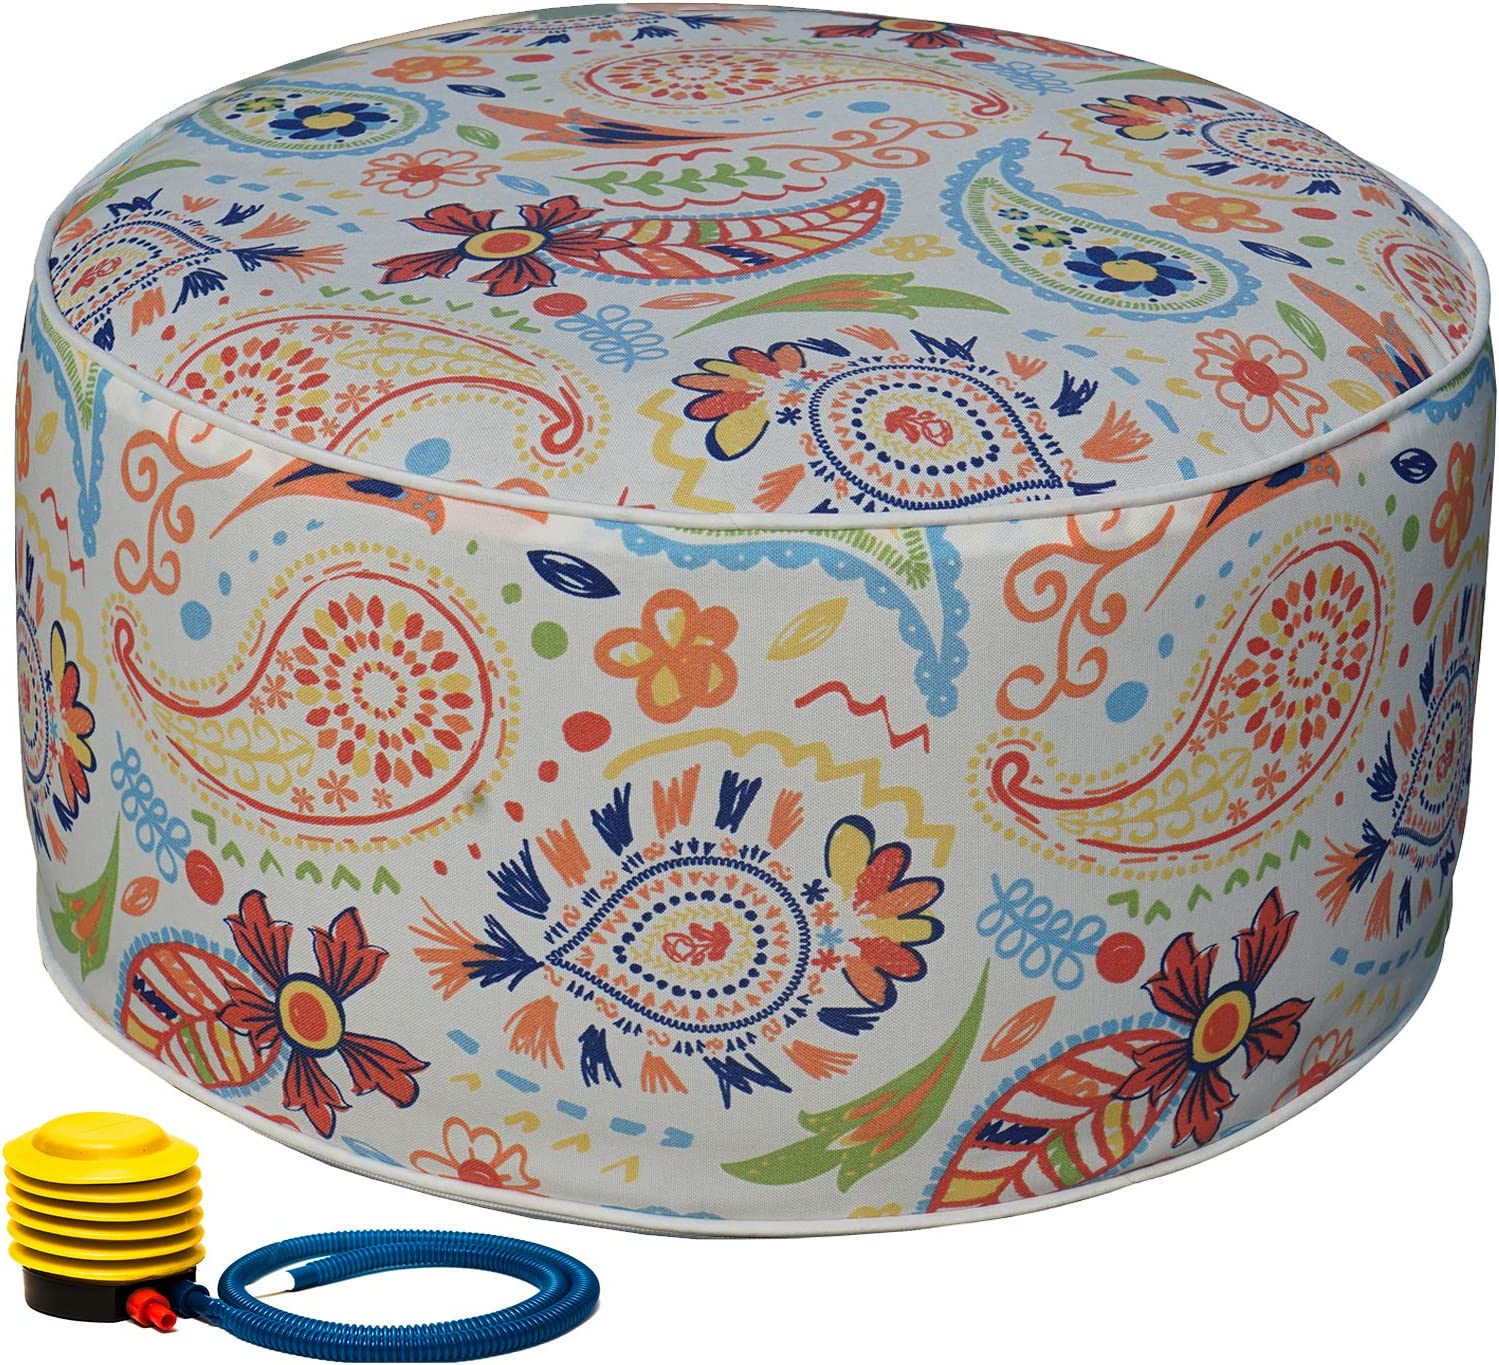 Kozyard Inflatable Stool Ottoman Used for Indoor or Outdoor, Kids or Adults, Camping or Home (Abstract Warm)